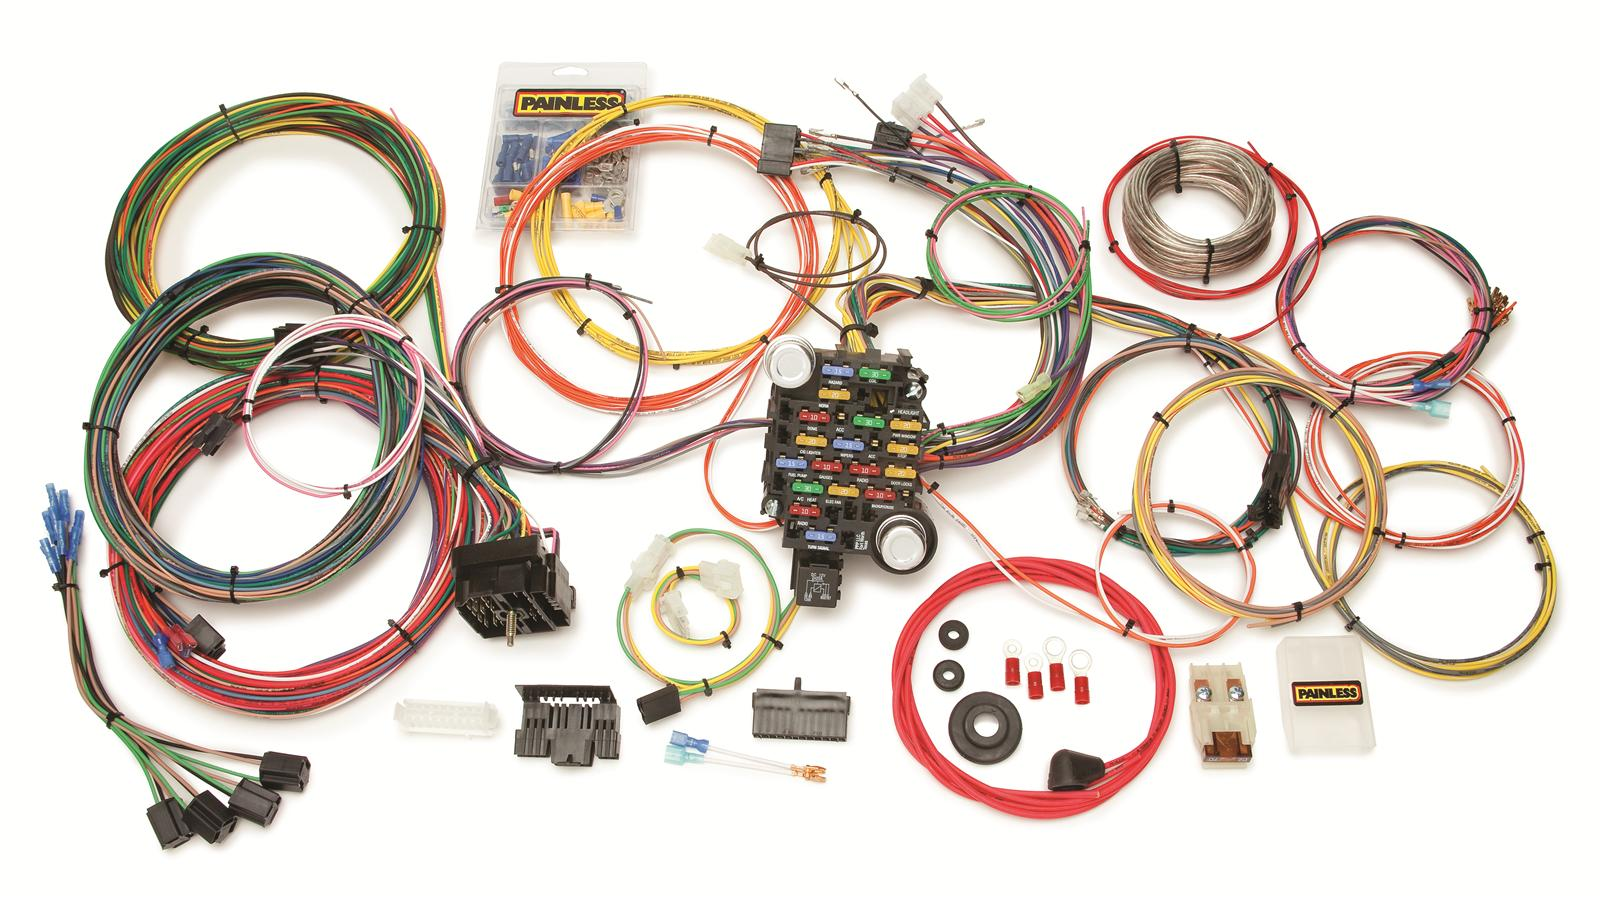 prf 10205_xl painless performance gmc chevy truck harnesses 10205 free painless wiring harness 1958 chevy truck at panicattacktreatment.co